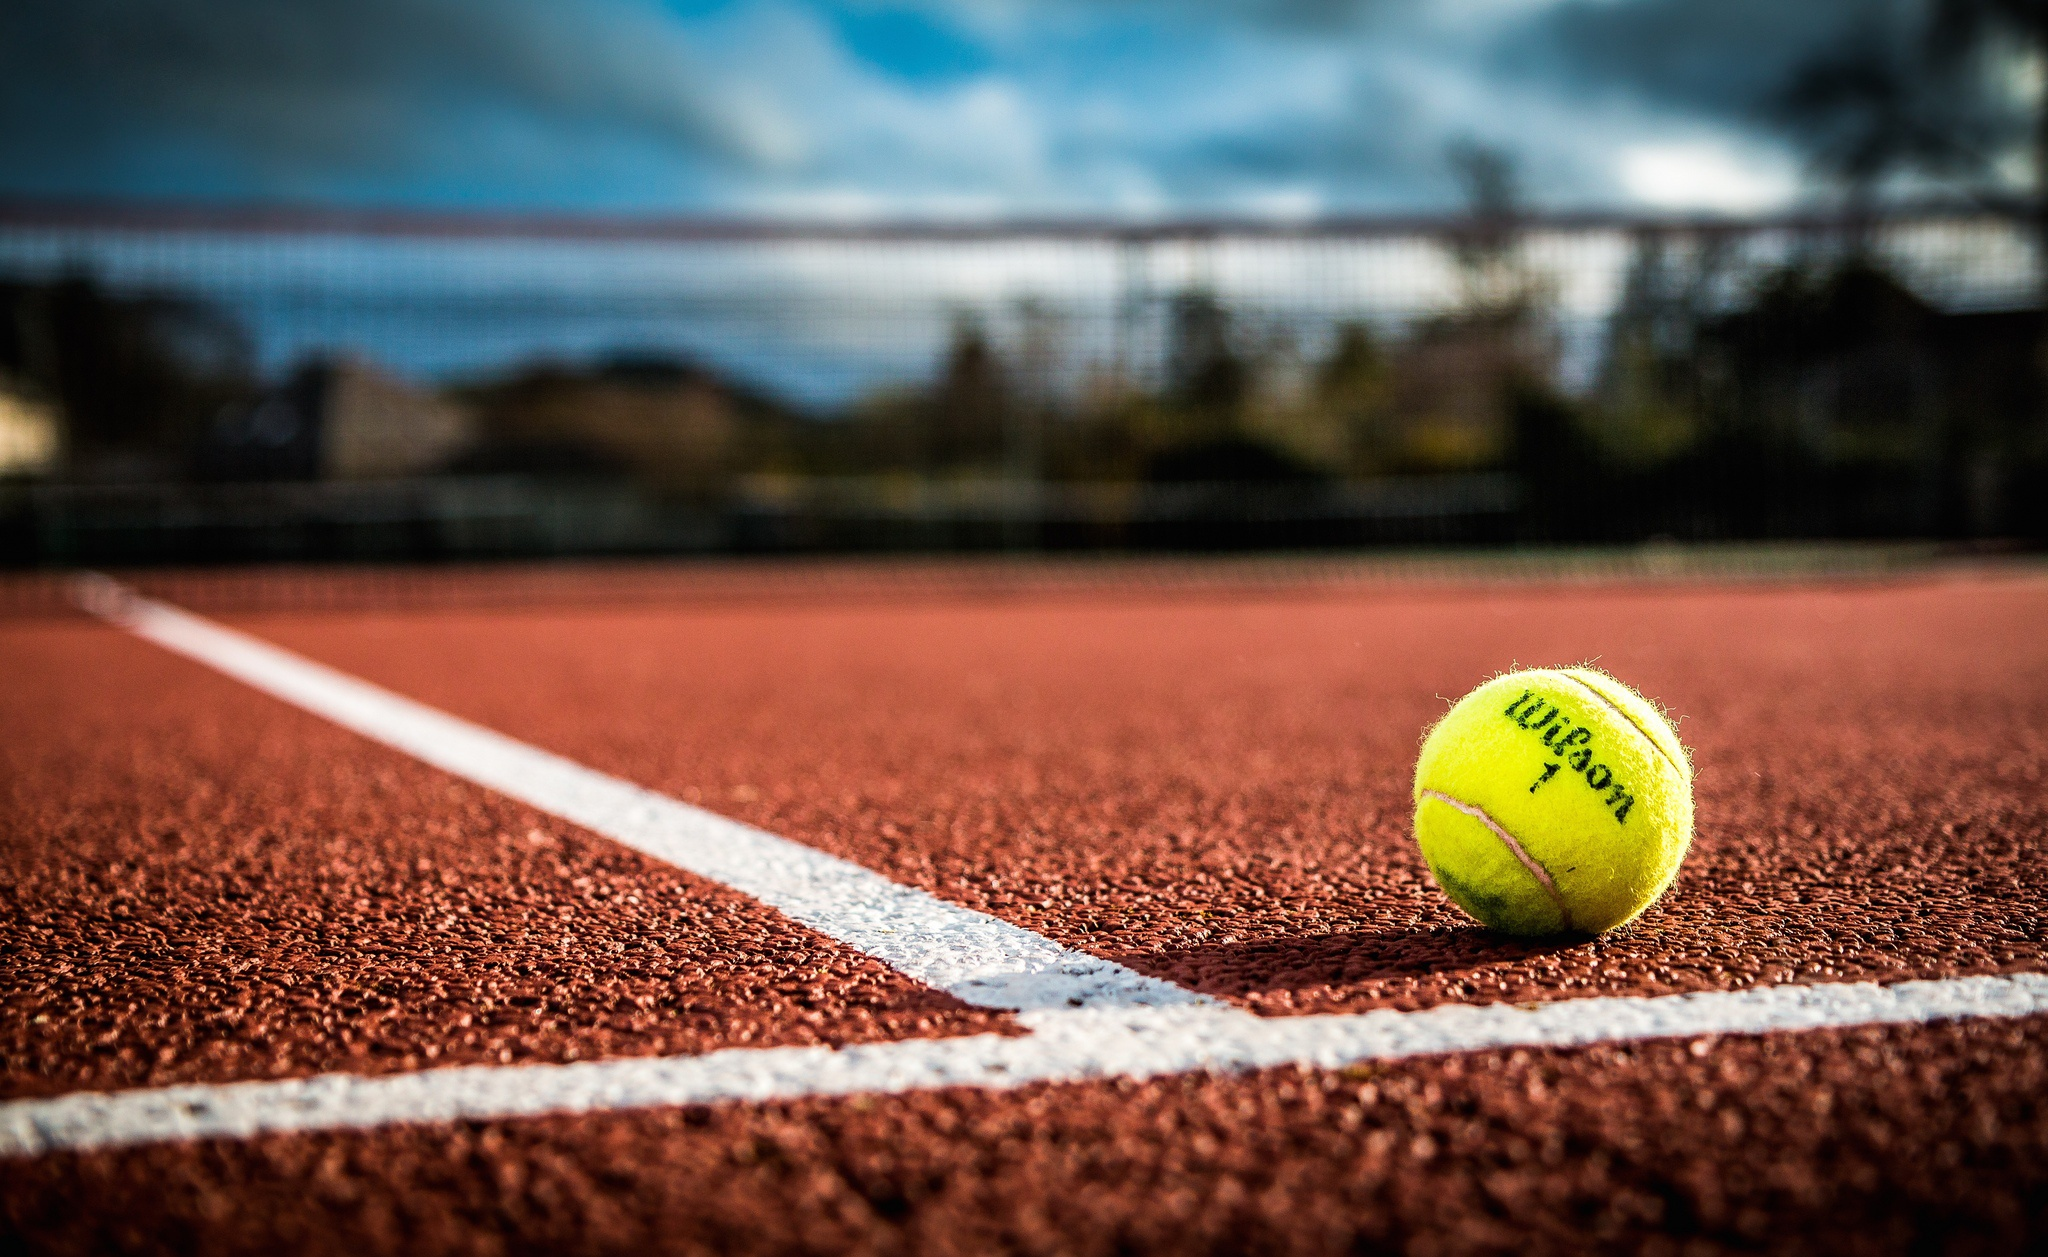 Innovative Picture design Ideas For the Pro Tennis Player